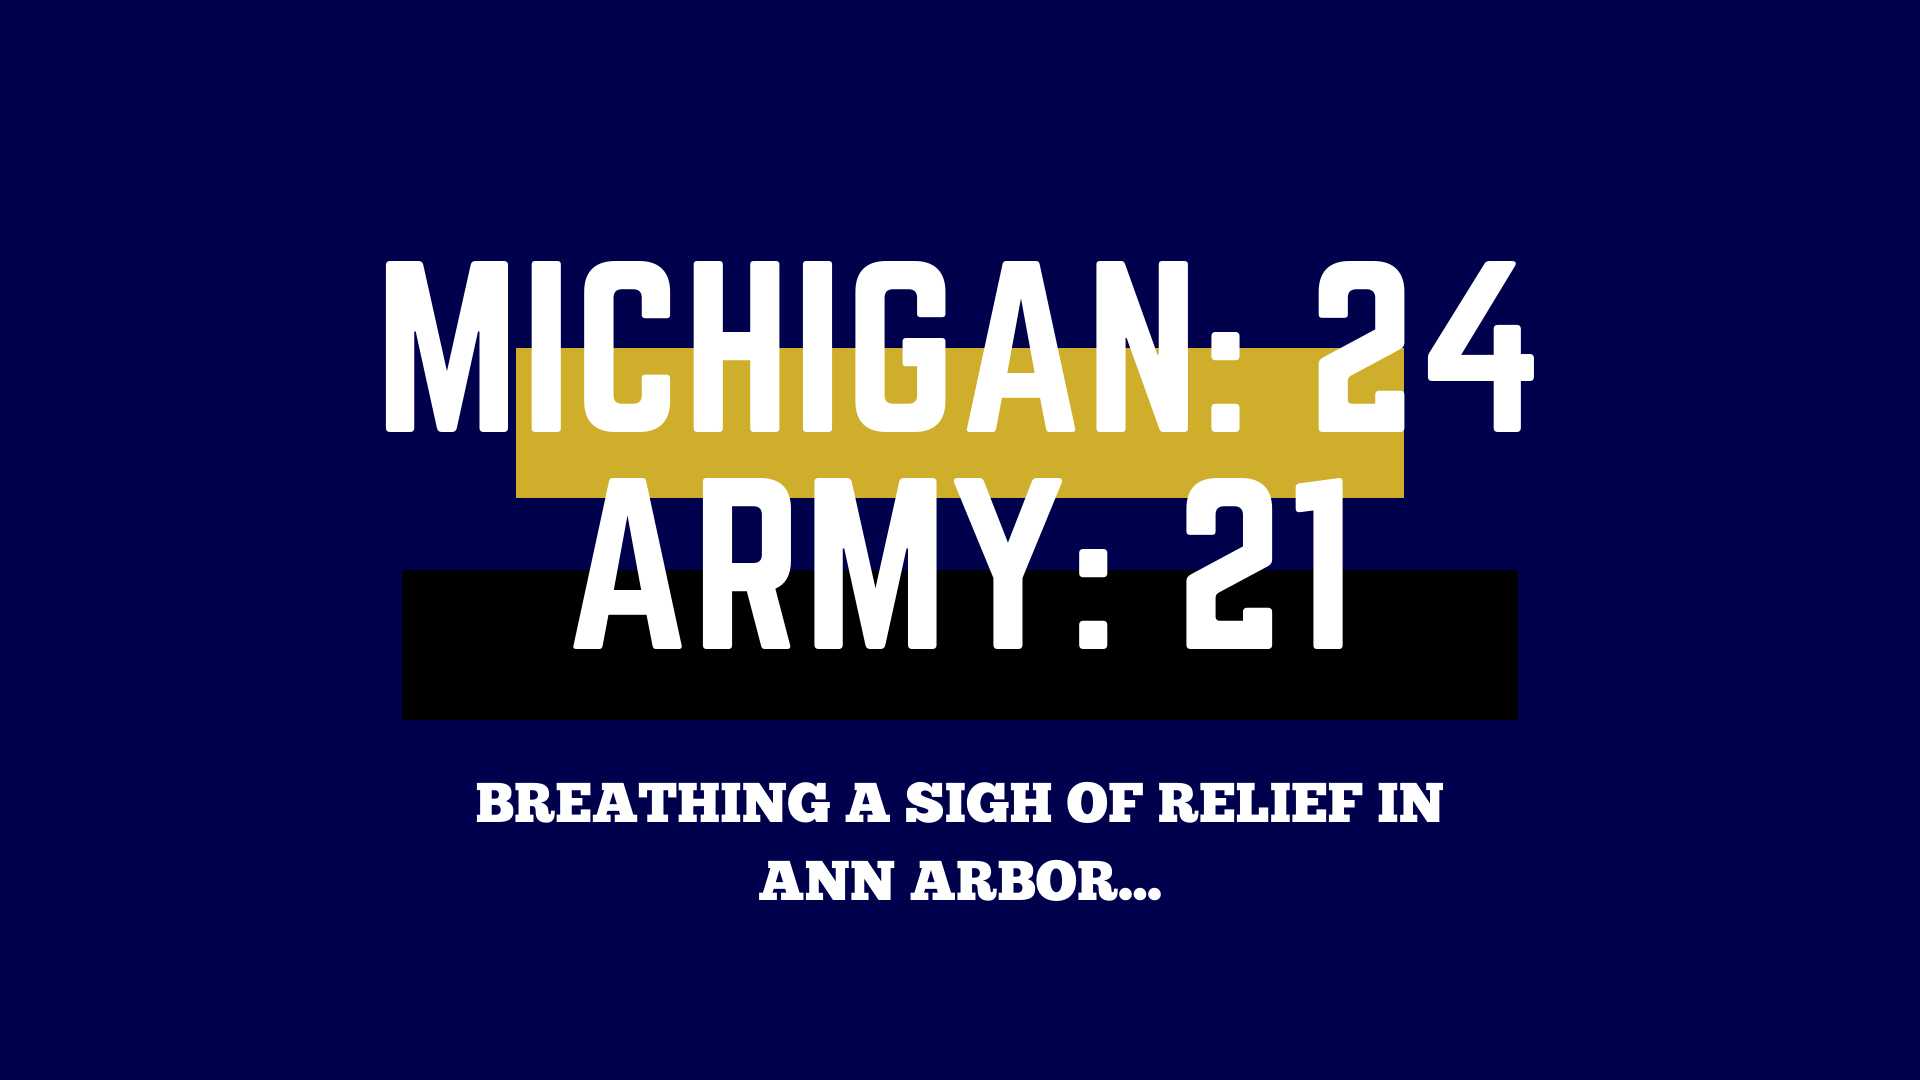 Two Overtimes Later: Michigan Just Barely Survives Army